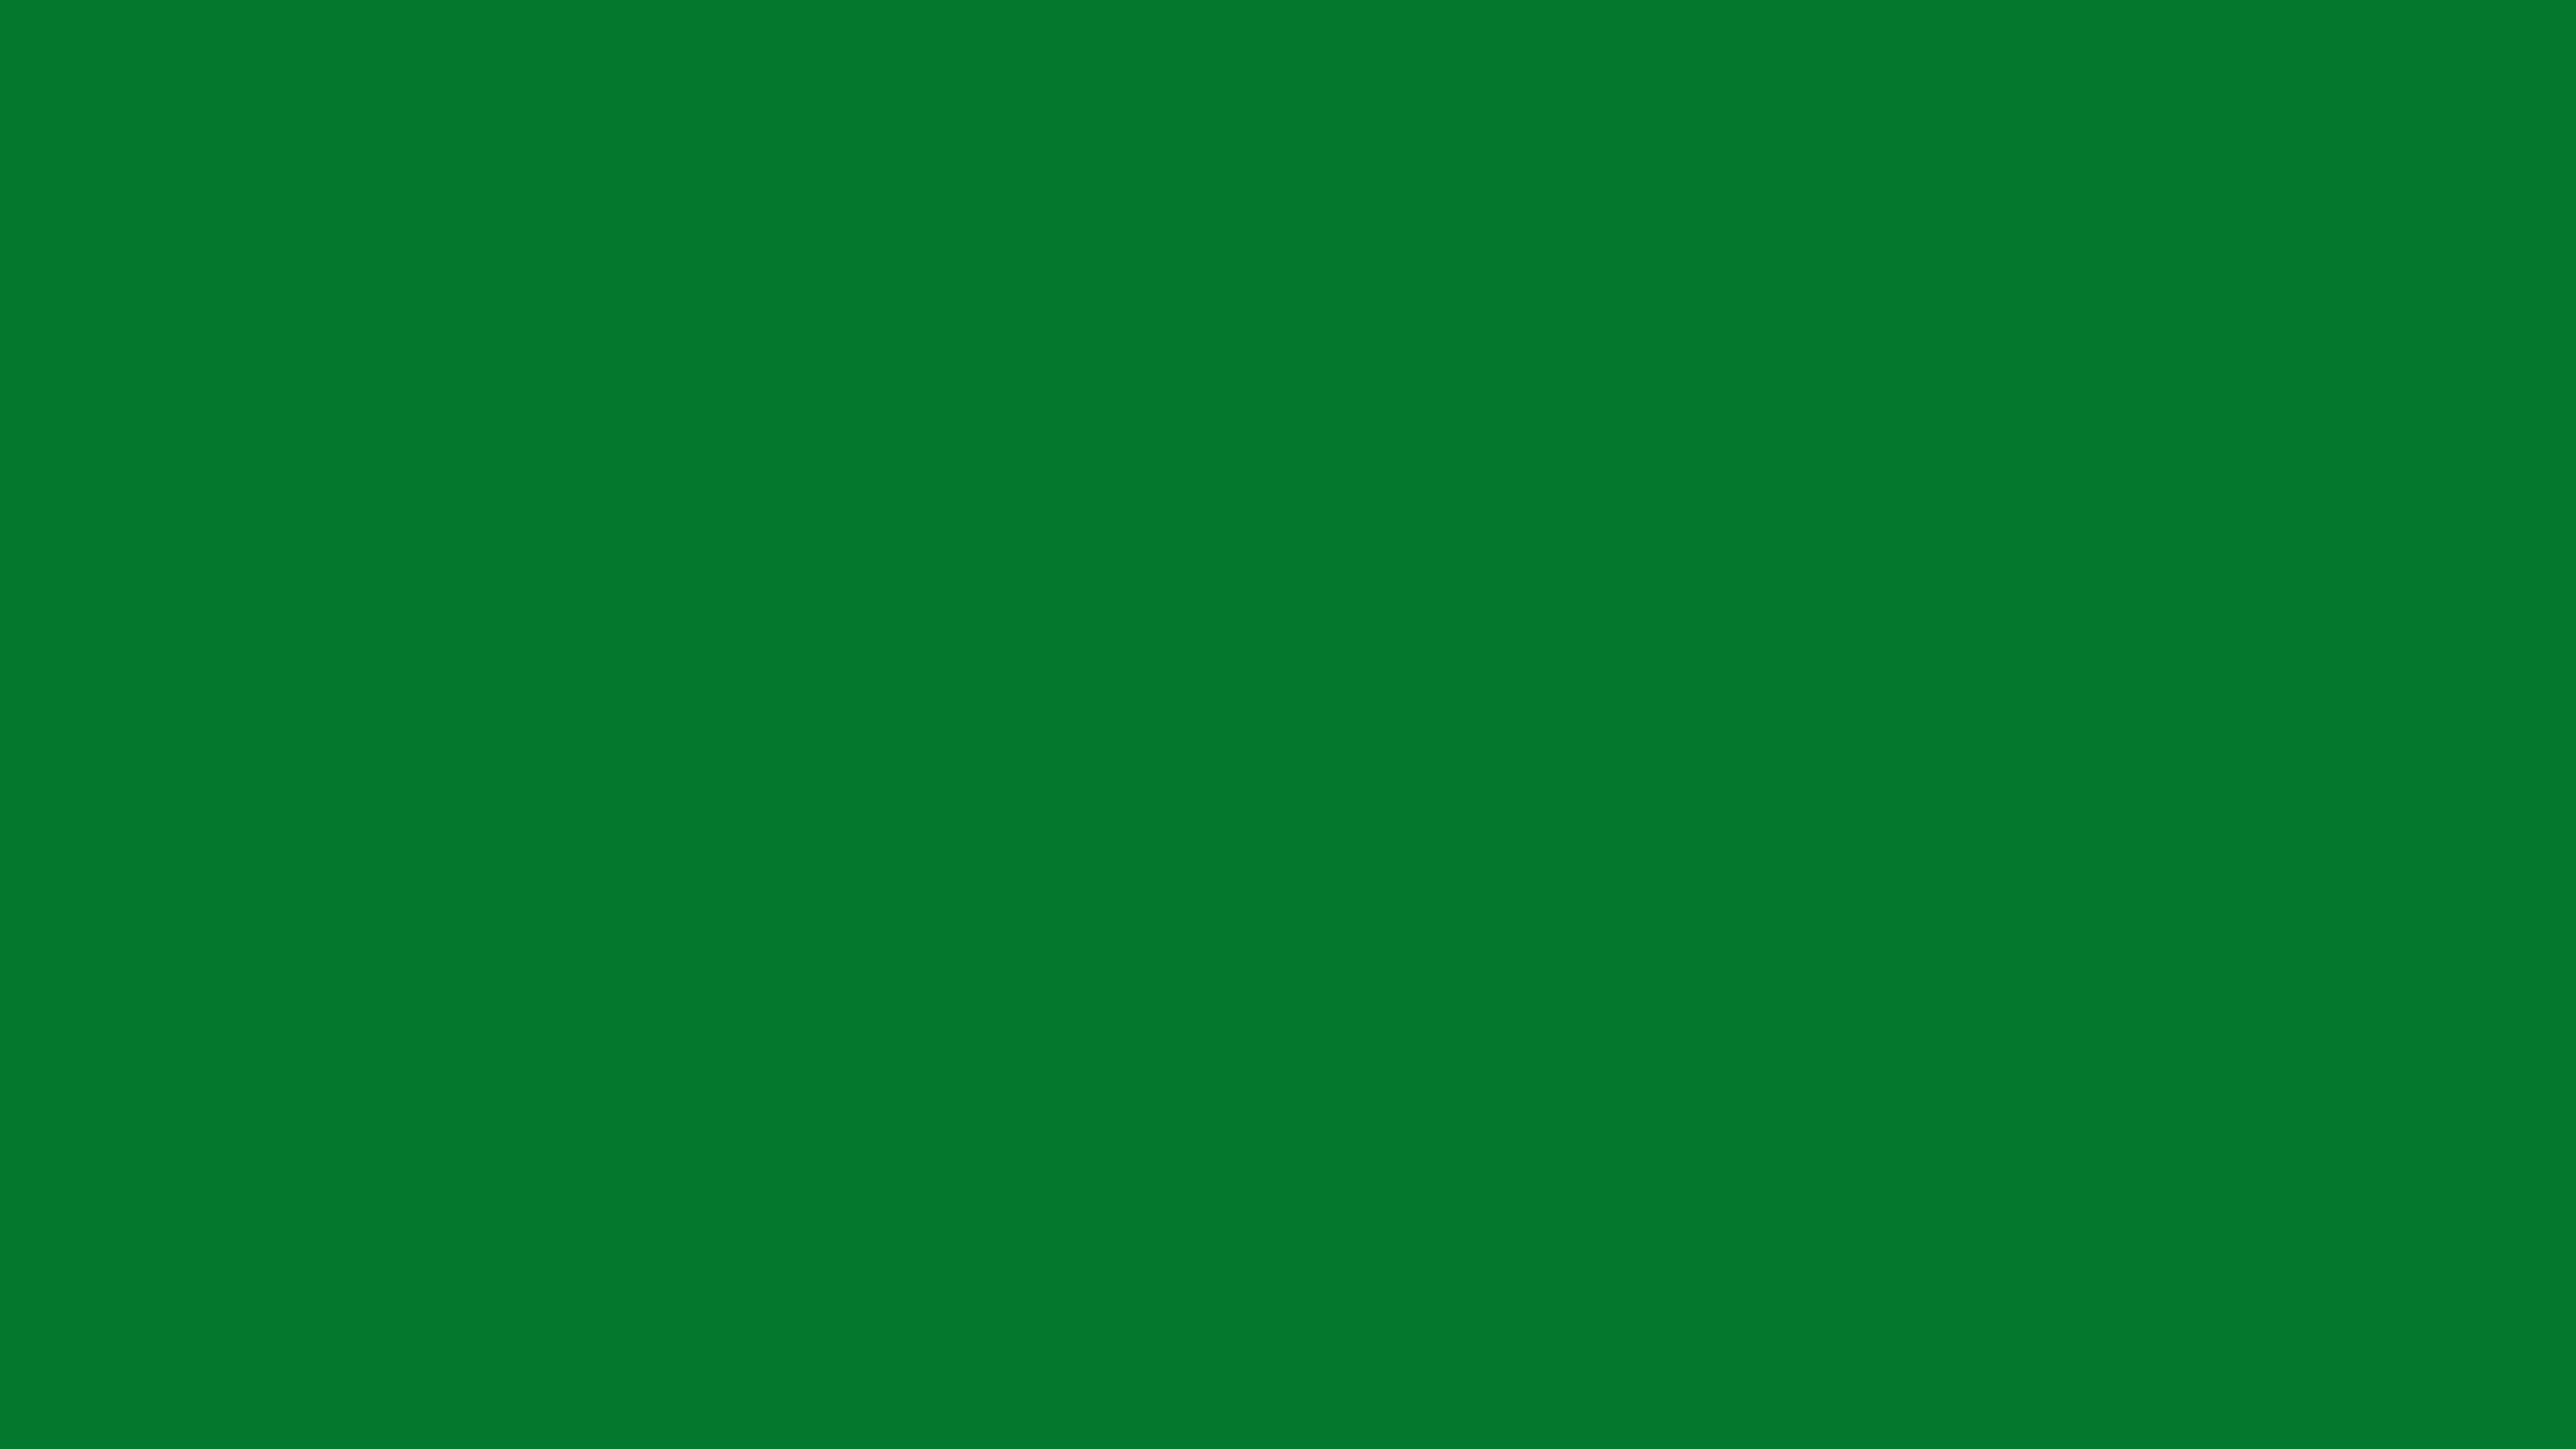 7680x4320 La Salle Green Solid Color Background